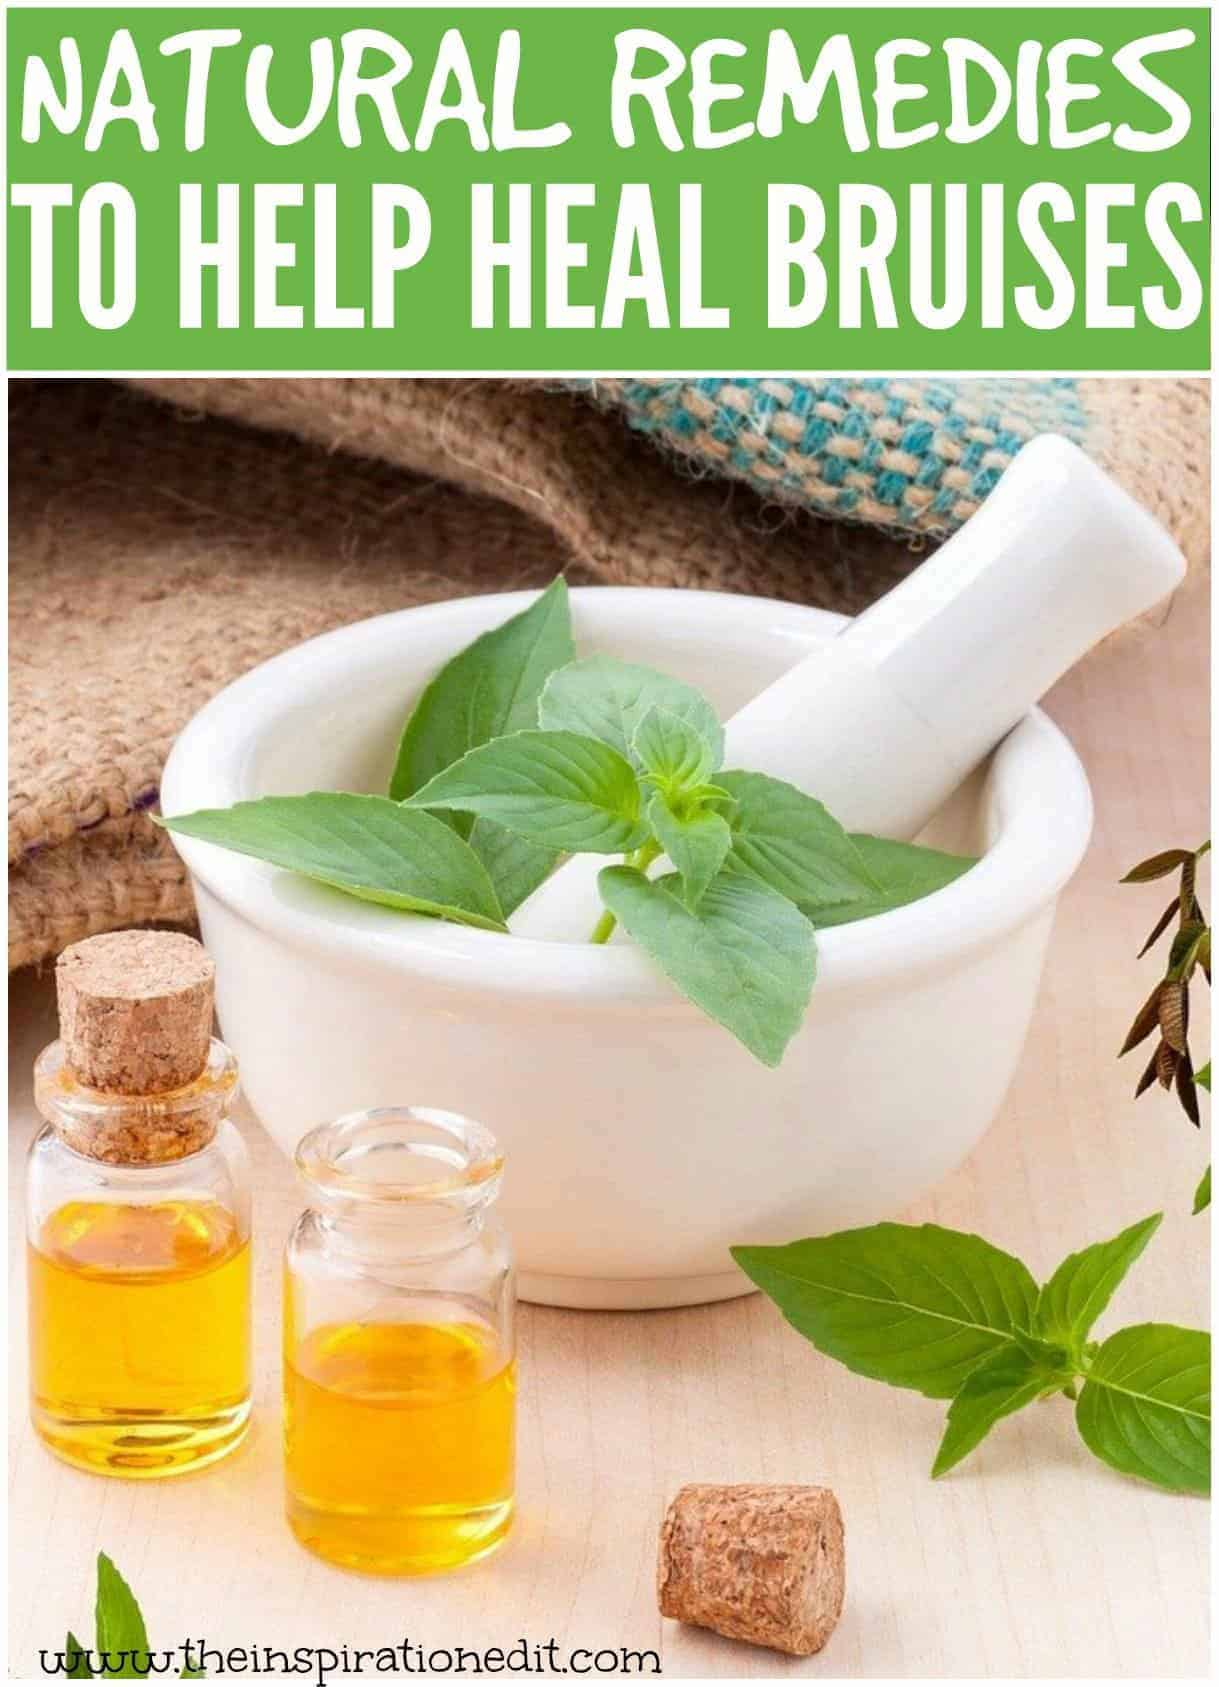 How To Get Rid Of Bruises Using Natural Remedies